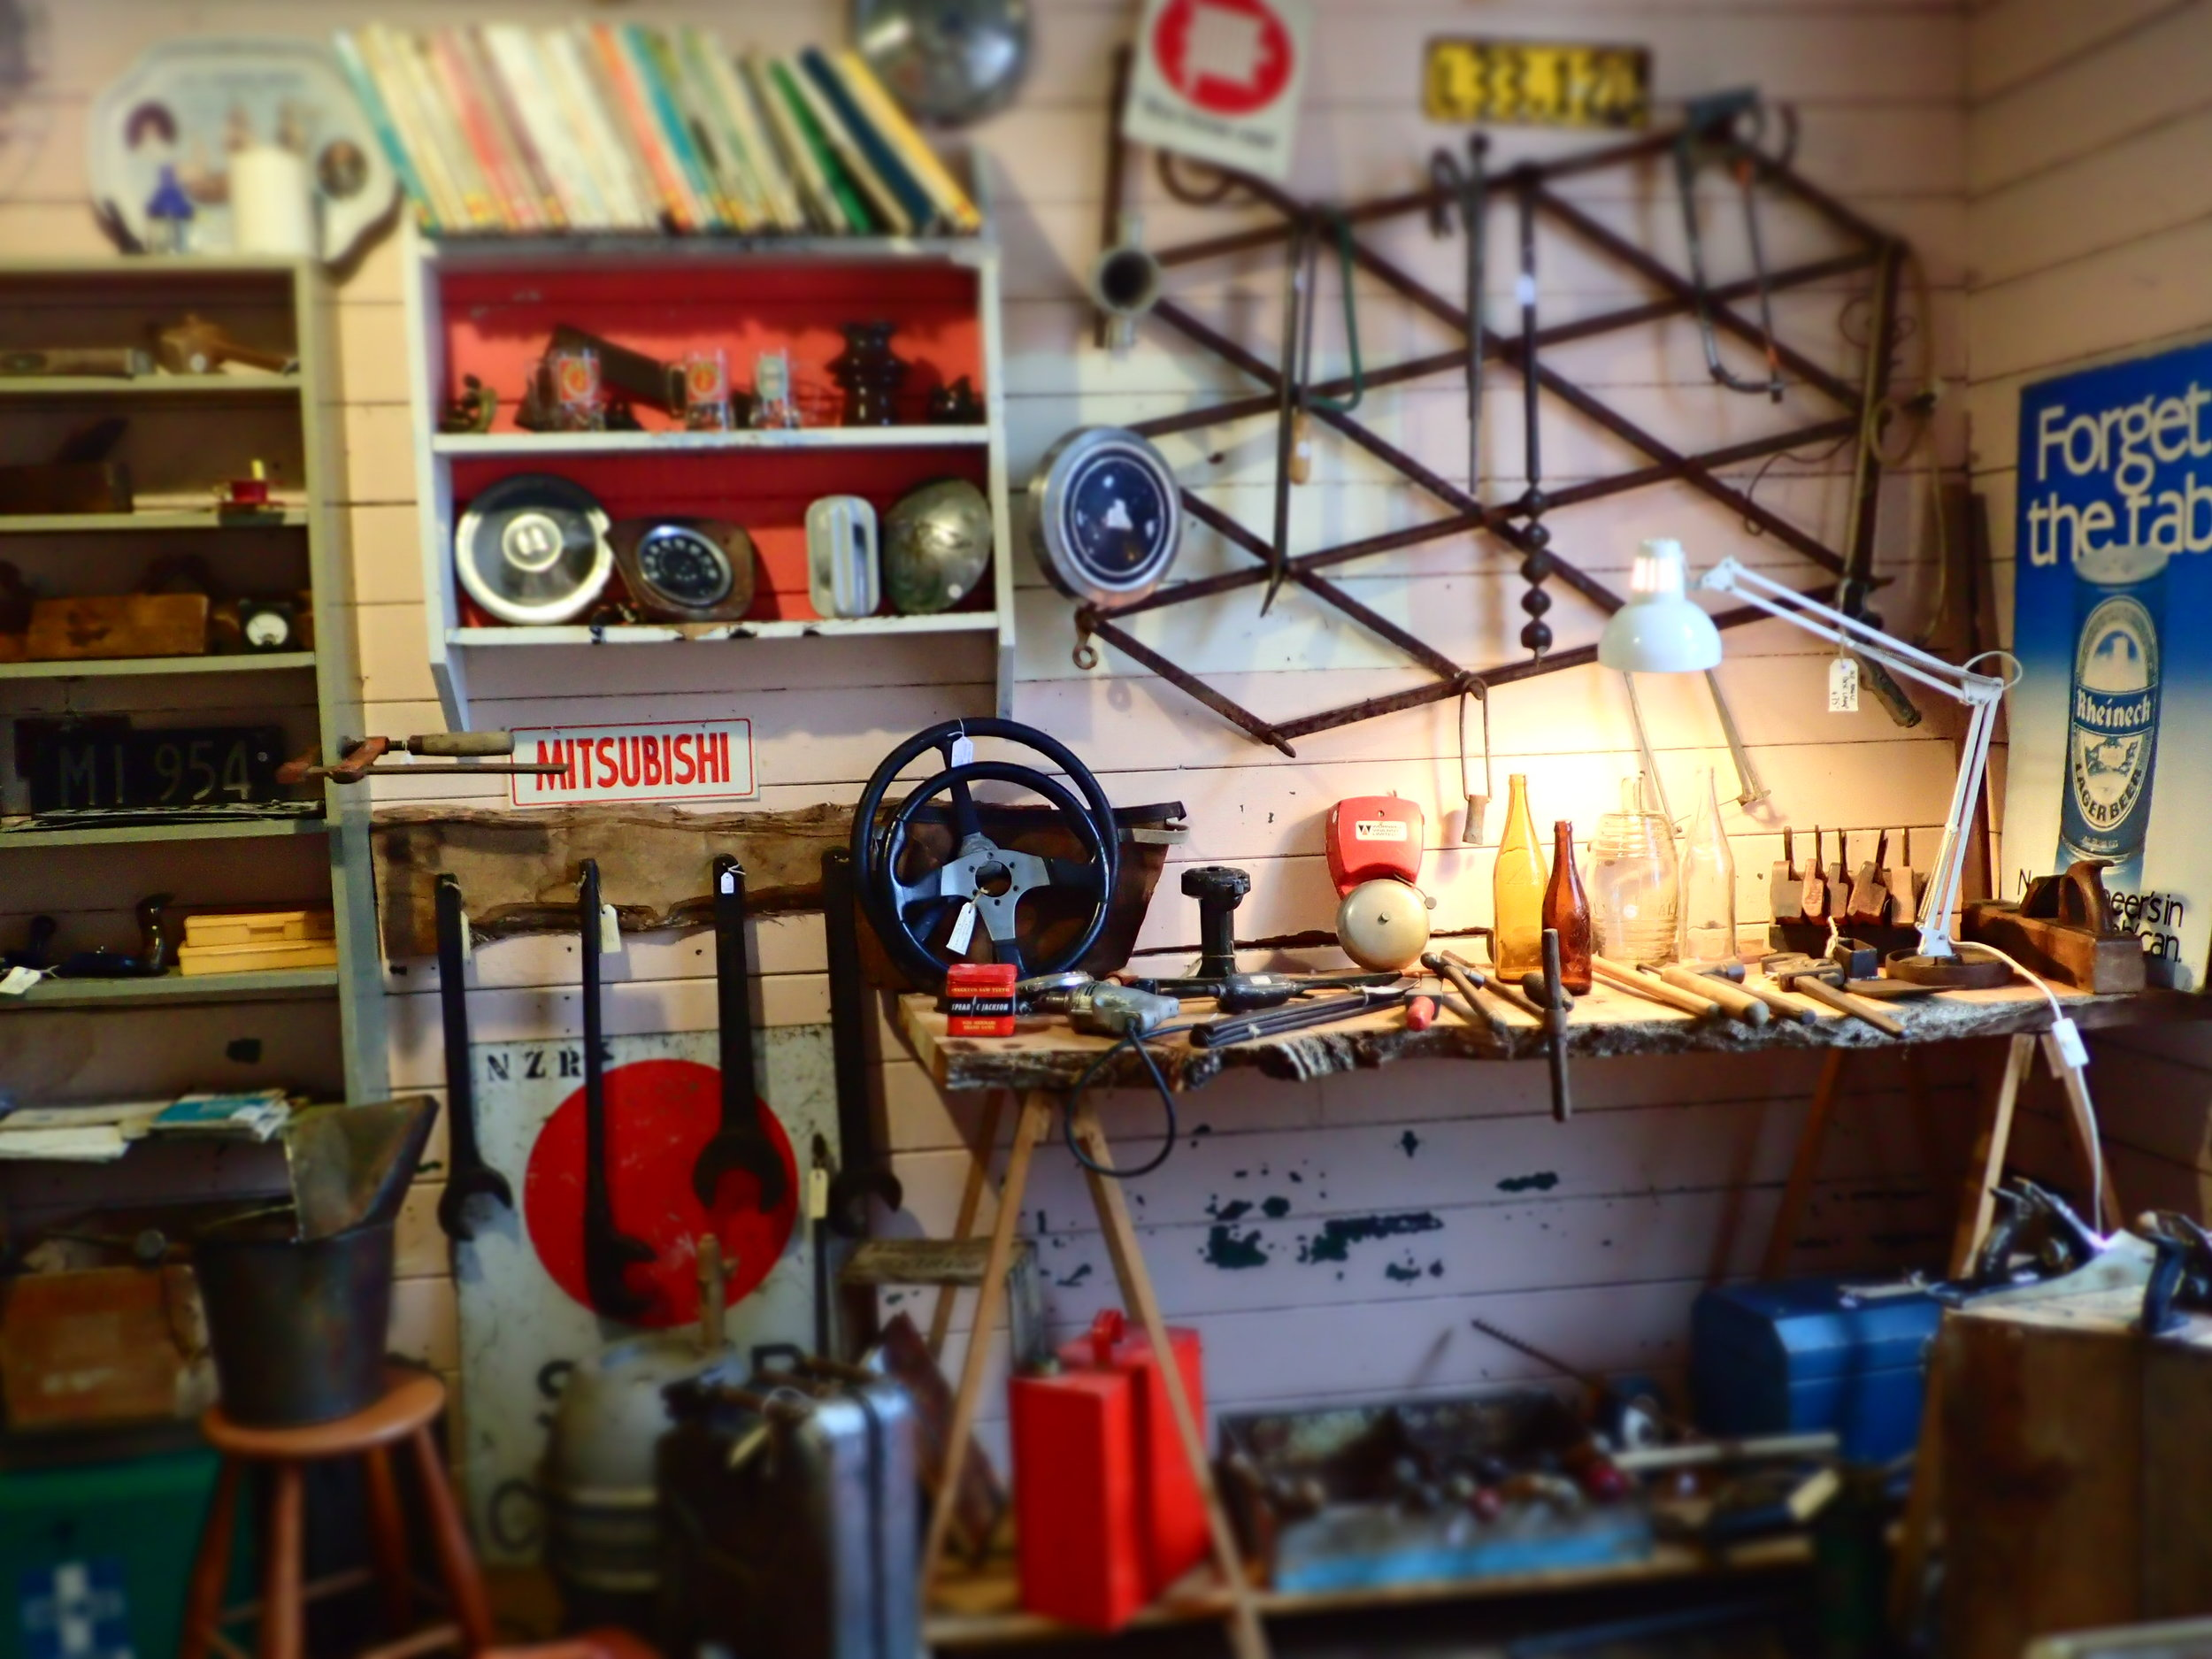 """Vintage & antique hand tools, automotive parts, NZ number plates, petrol & oil collectables,beer drinking & smoking paraphernalia, collectible bottles, , work shop essentials and more.  All in the """"they don't make them like that any more"""" vintage quality,."""